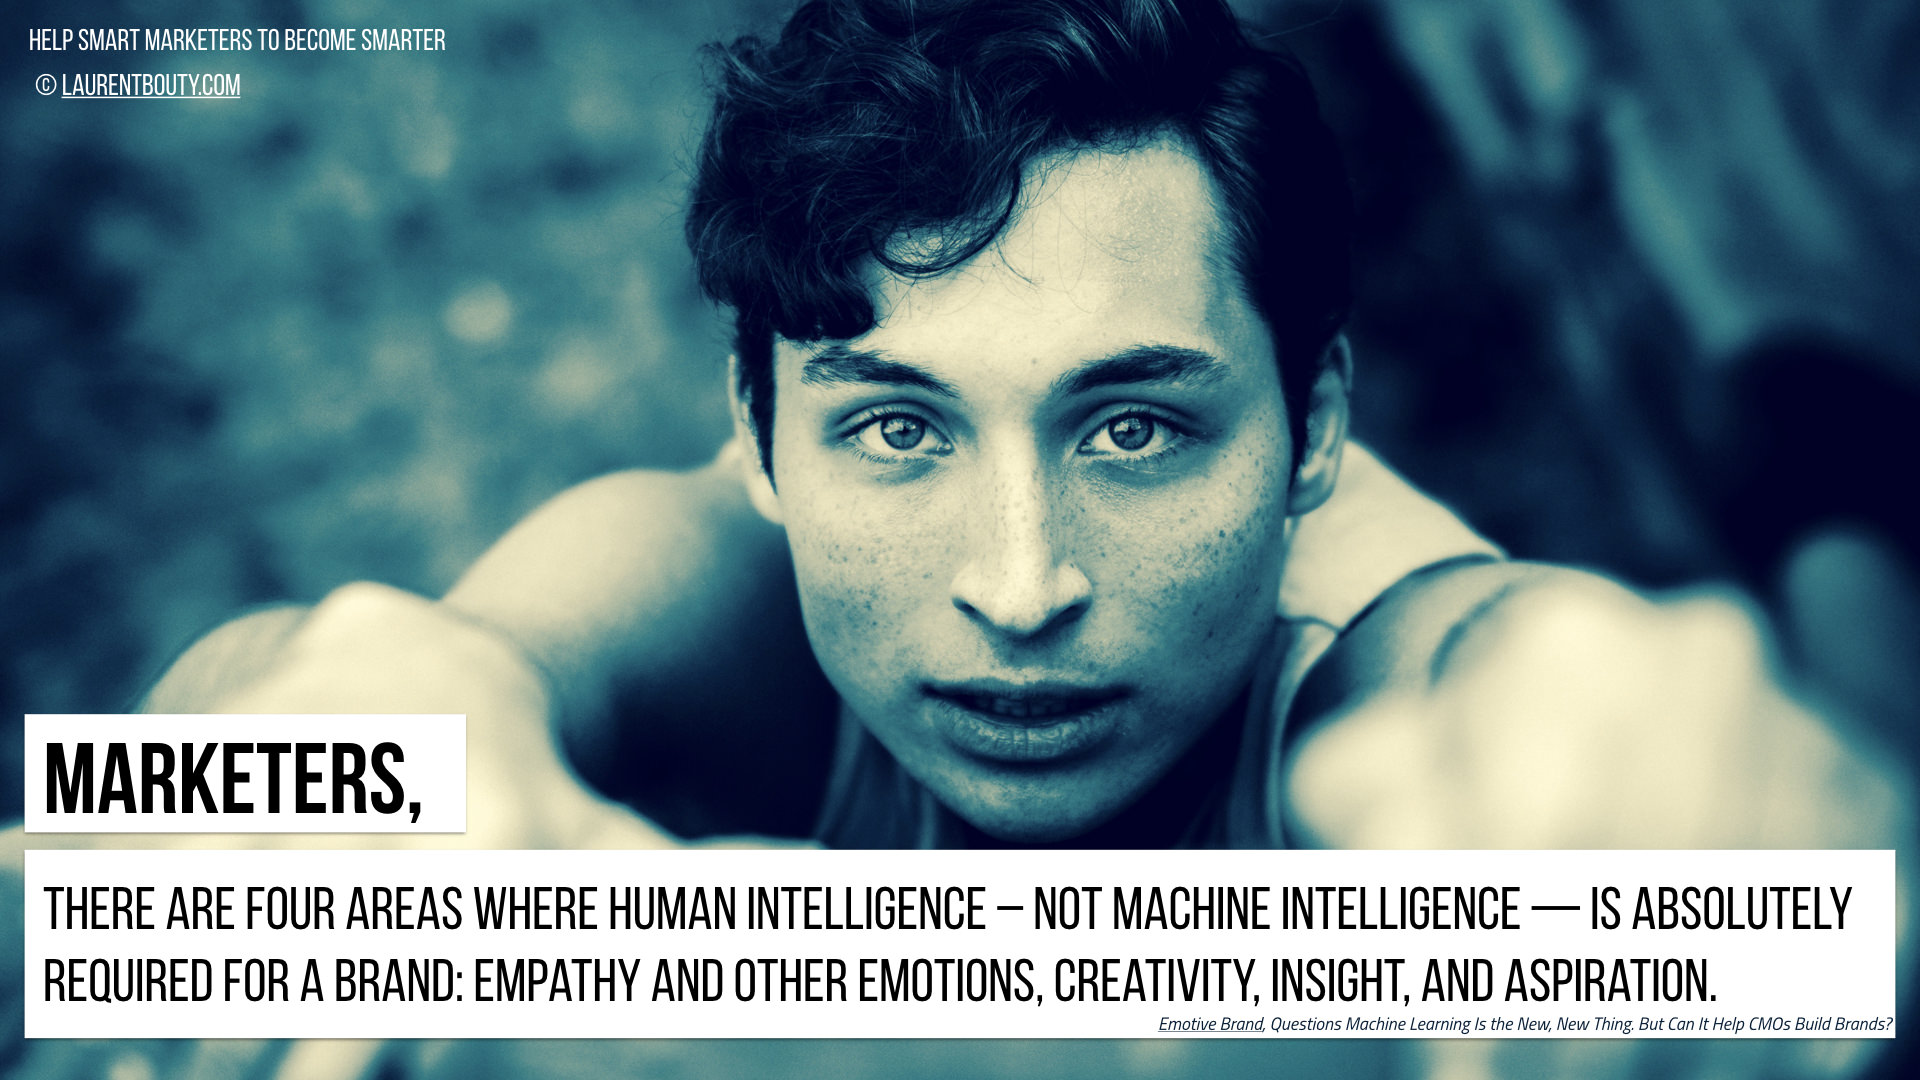 Marketers, There are Four Areas where Human Intelligence is Key for a Brand